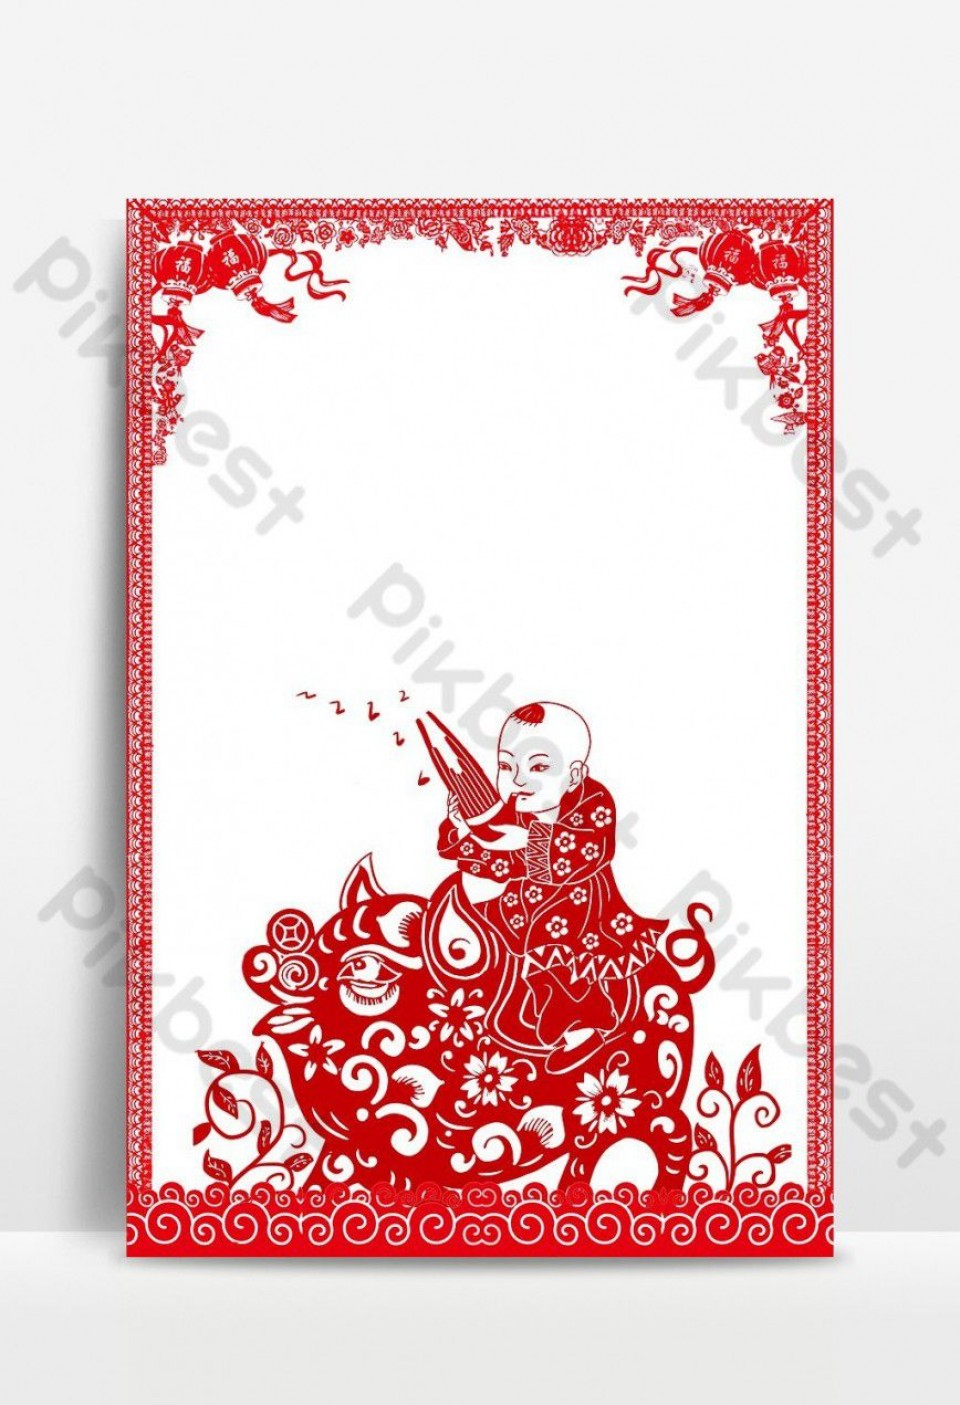 002 Shocking Chinese Paper Cut Template Highest Quality 960